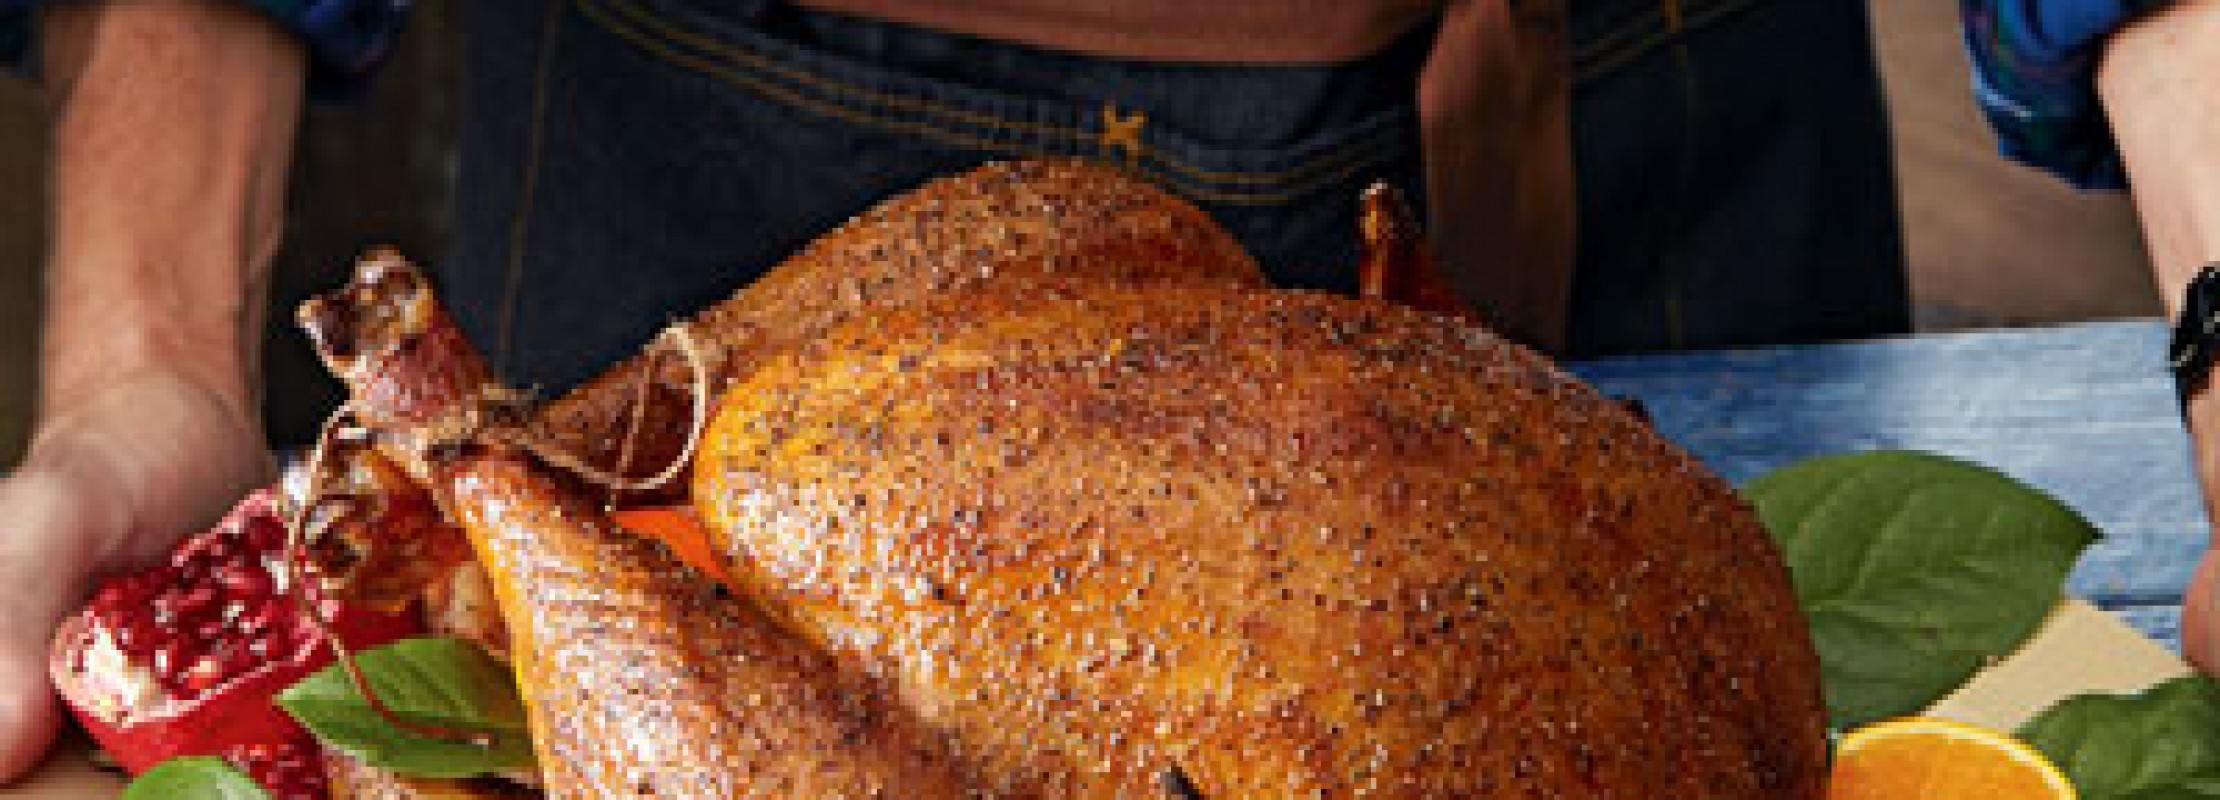 Cajun fried turkey from Neiman Marcus